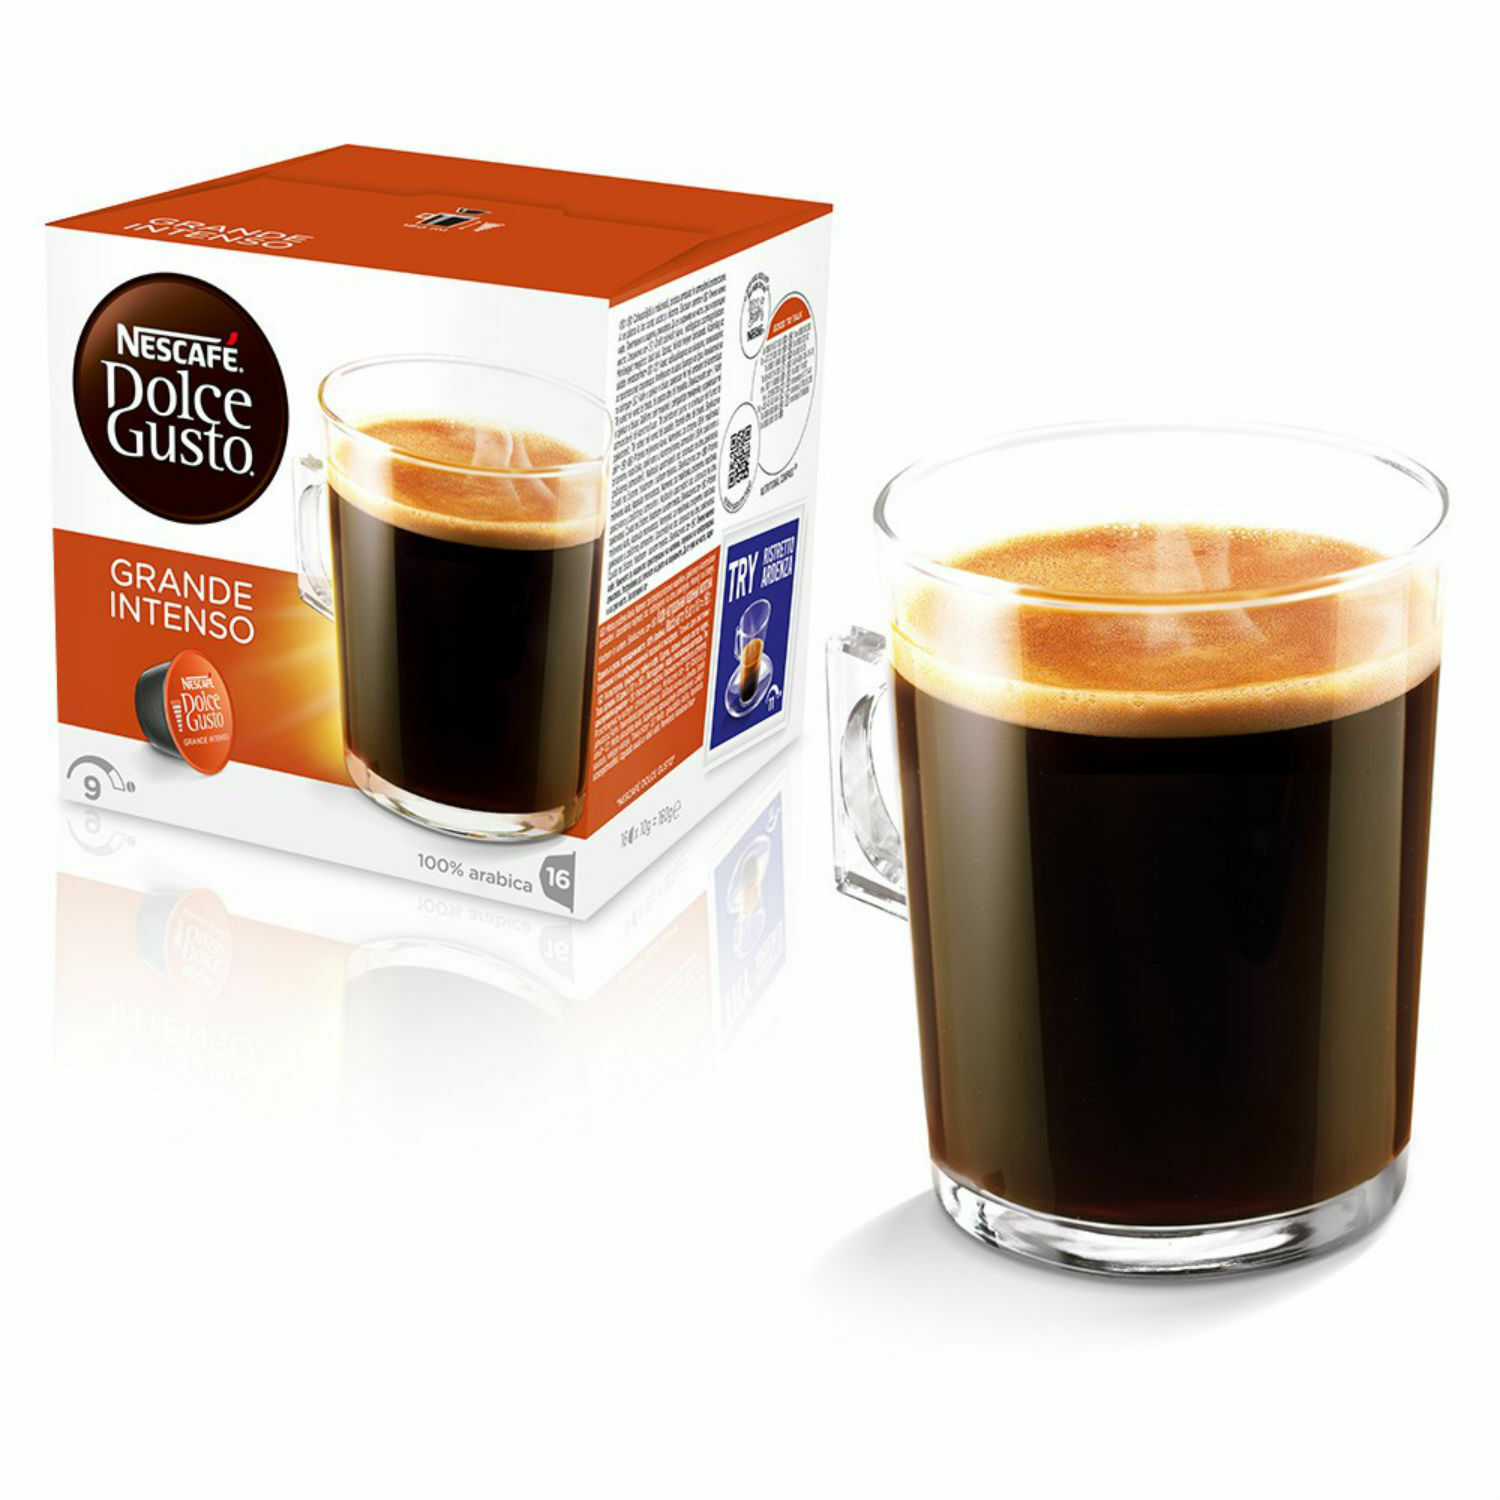 Dolce Gusto Cafe Crema Grande Intenso Coffee (6 Boxes,Total 96 Capsules )